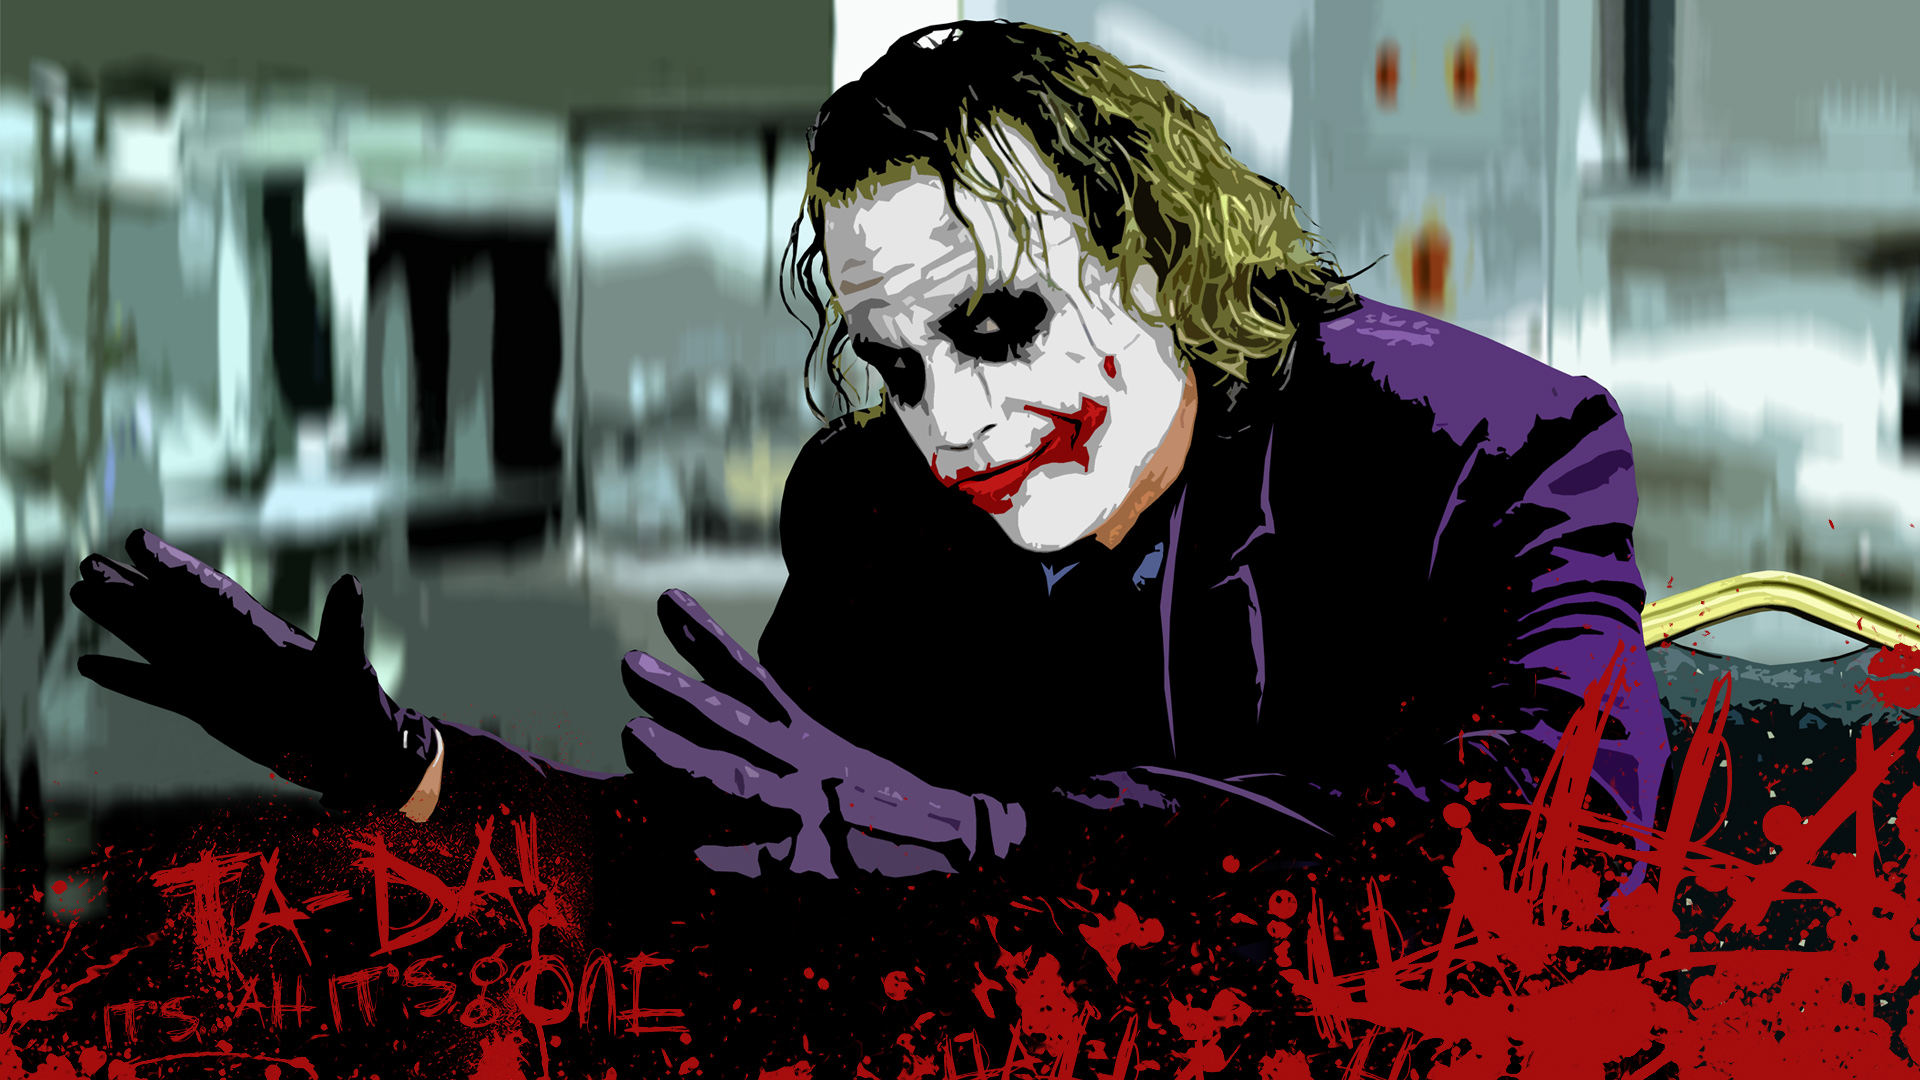 Le Joker Images Joker Hd Fond D Ecran And Background Photos 28092765